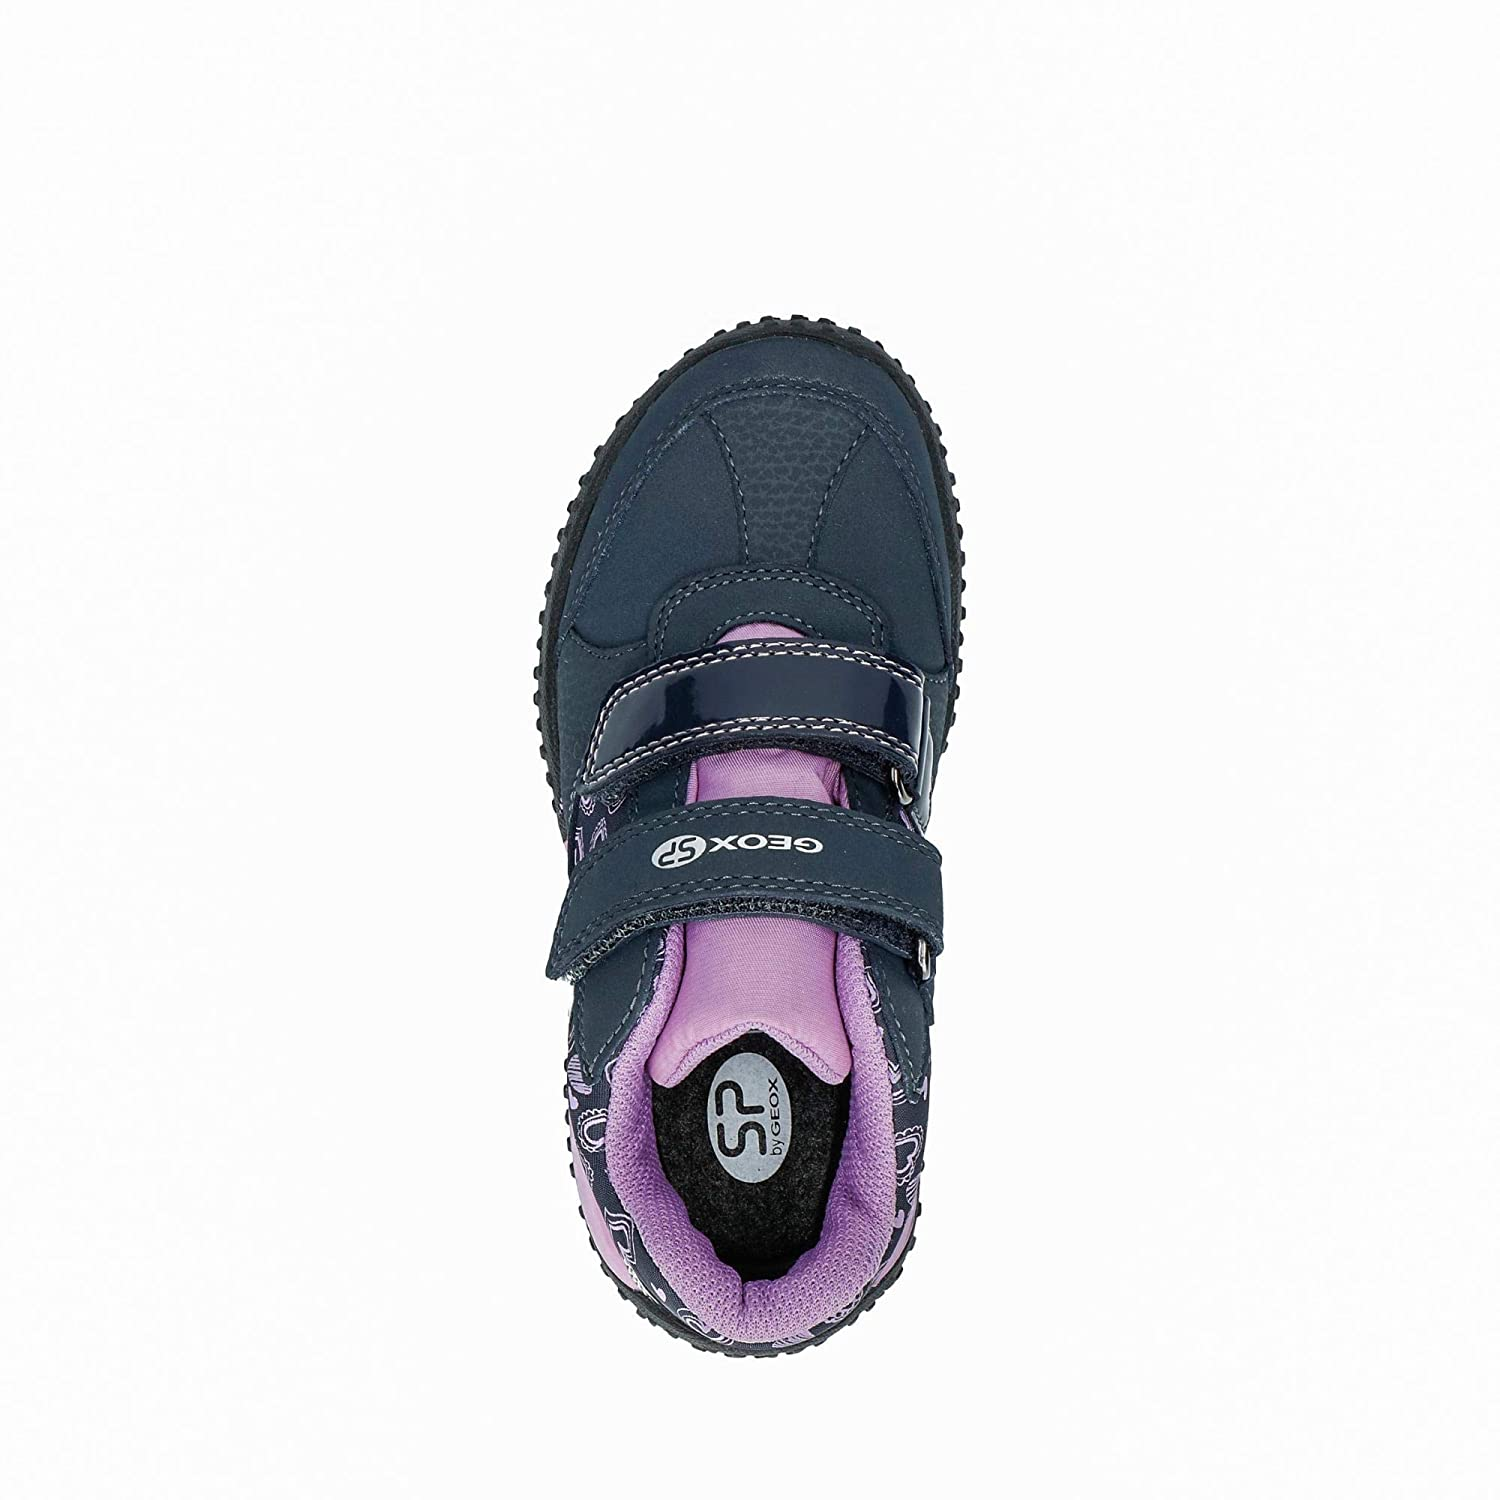 Lassie Faible Low Geox Fille Baskets Mode Baltic Girl WPF